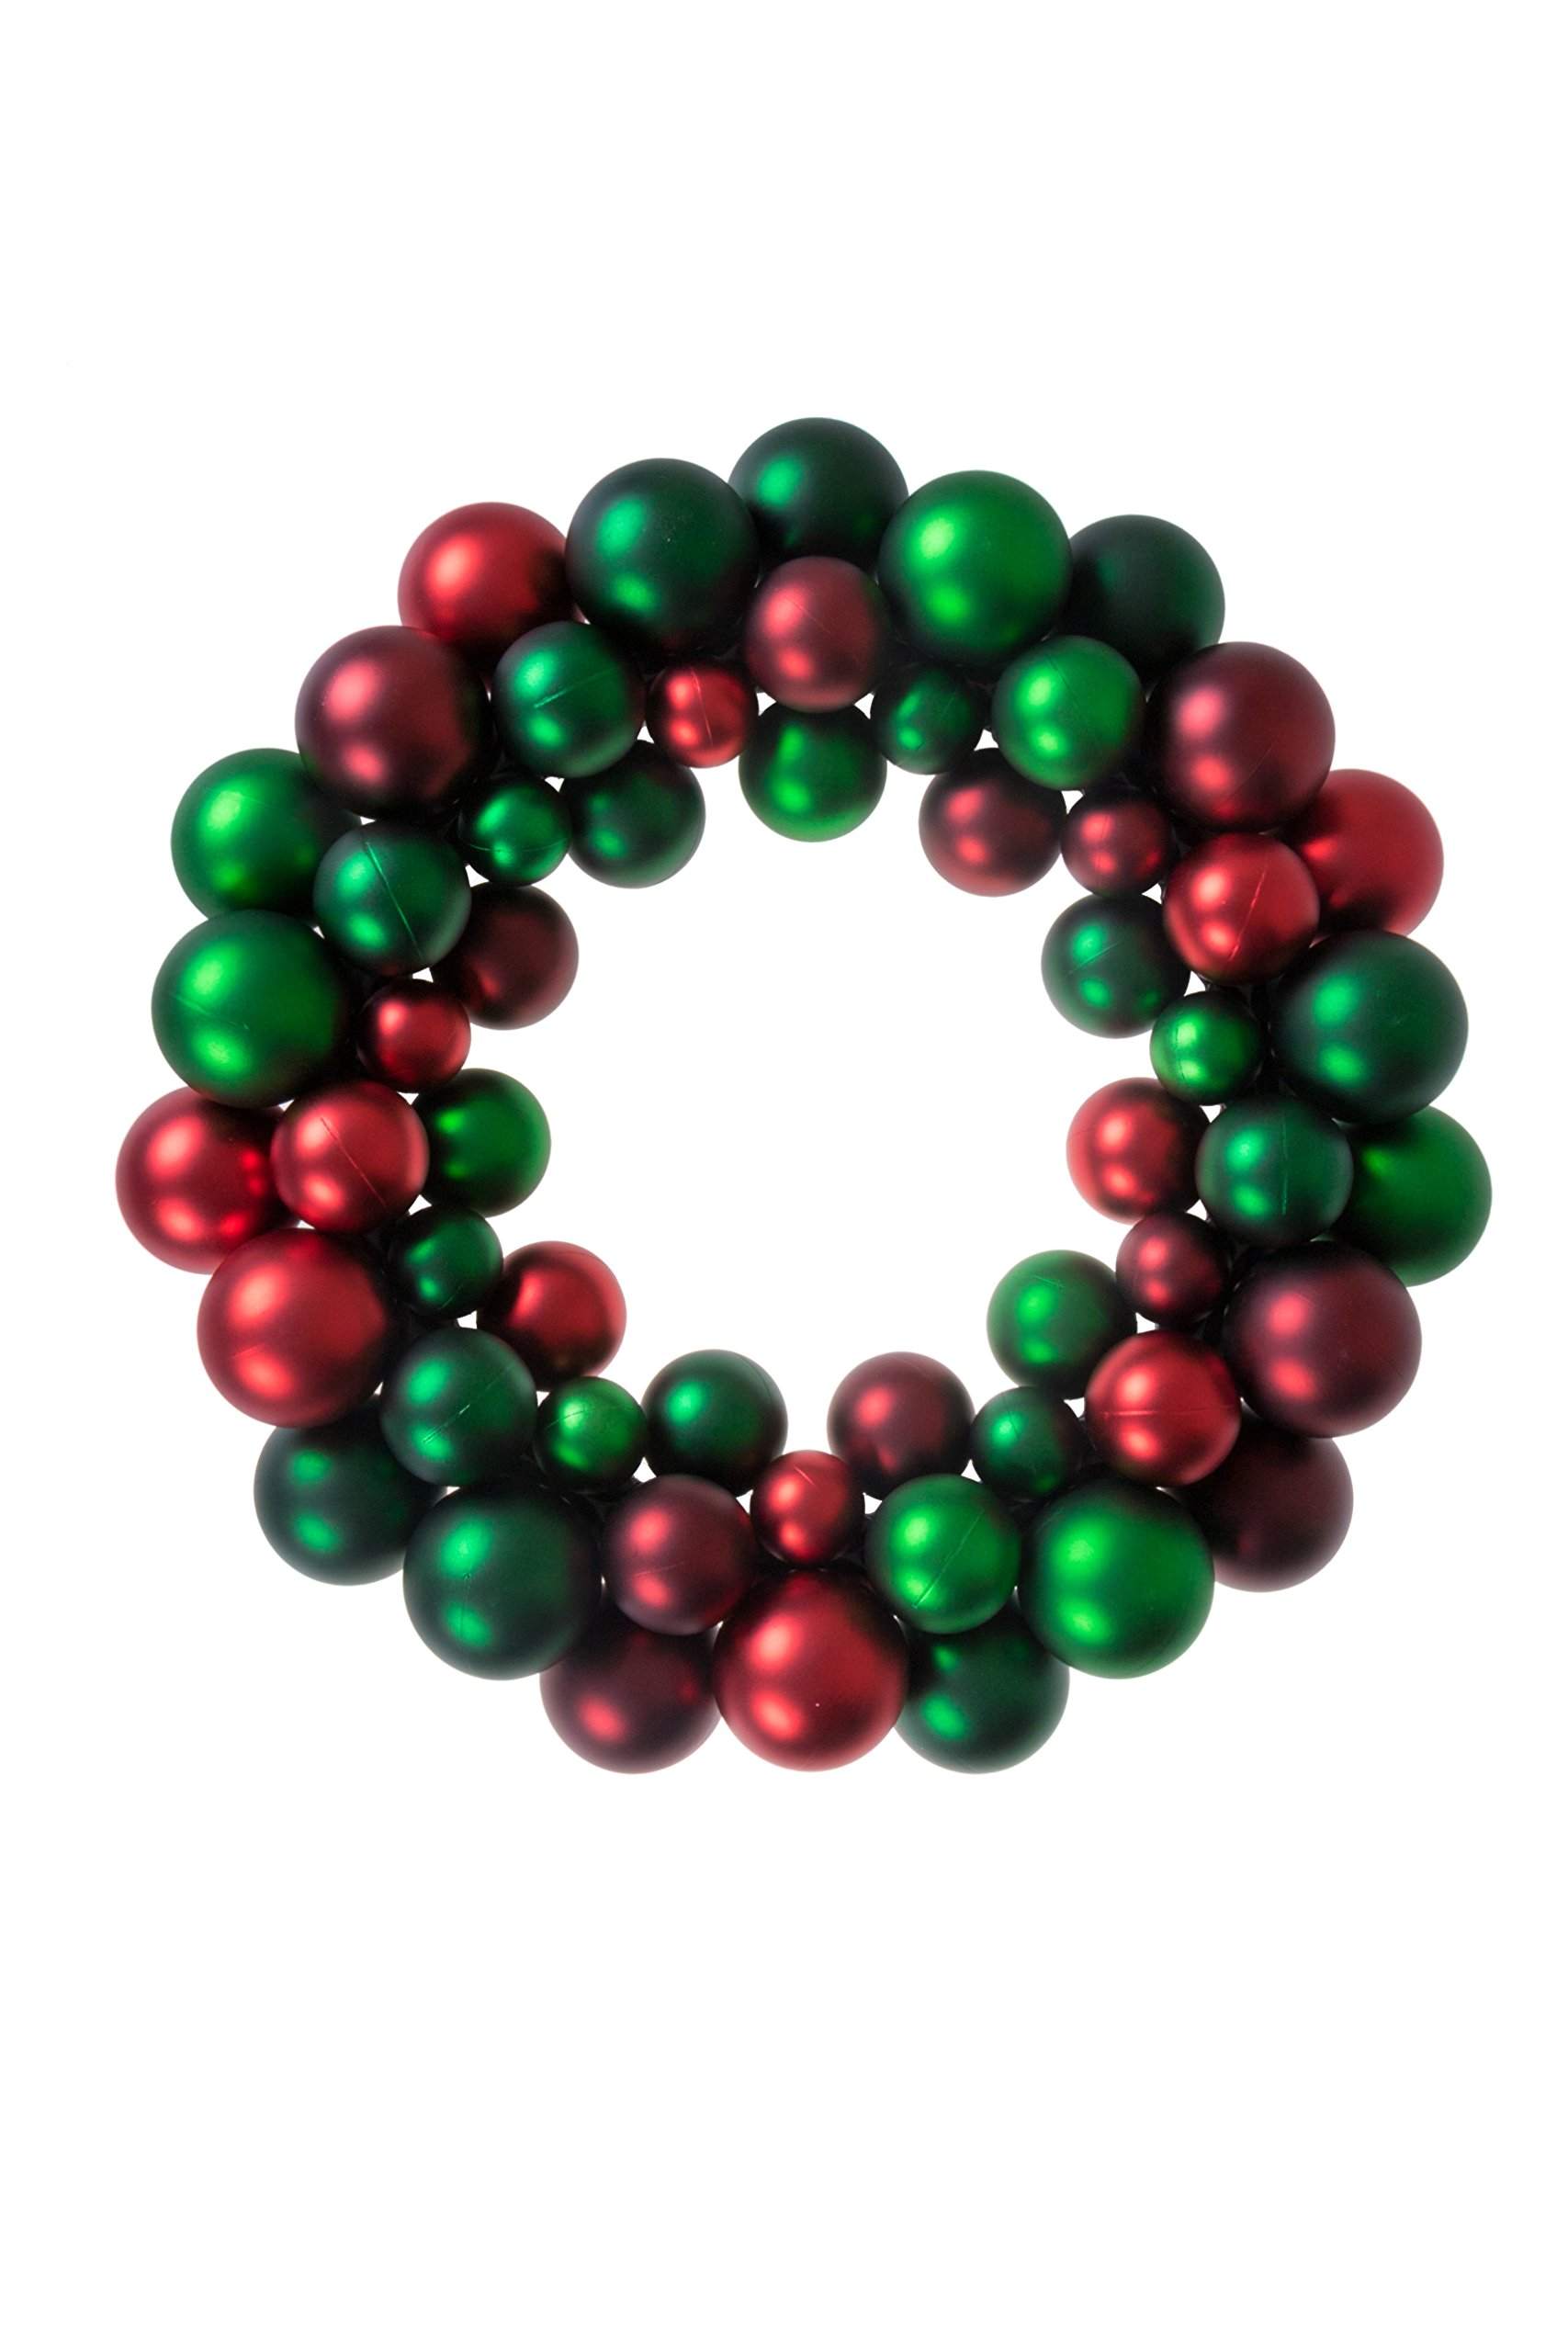 Christmas Ornament Wreath by Clever Creations | Bright Red & Green | Festive Holiday Décor | Classic Theme | Lightweight Shatter Resistant | Great for Indoor/Outdoor Use | 13.5'' x 13.5'' x 2.75'' ...